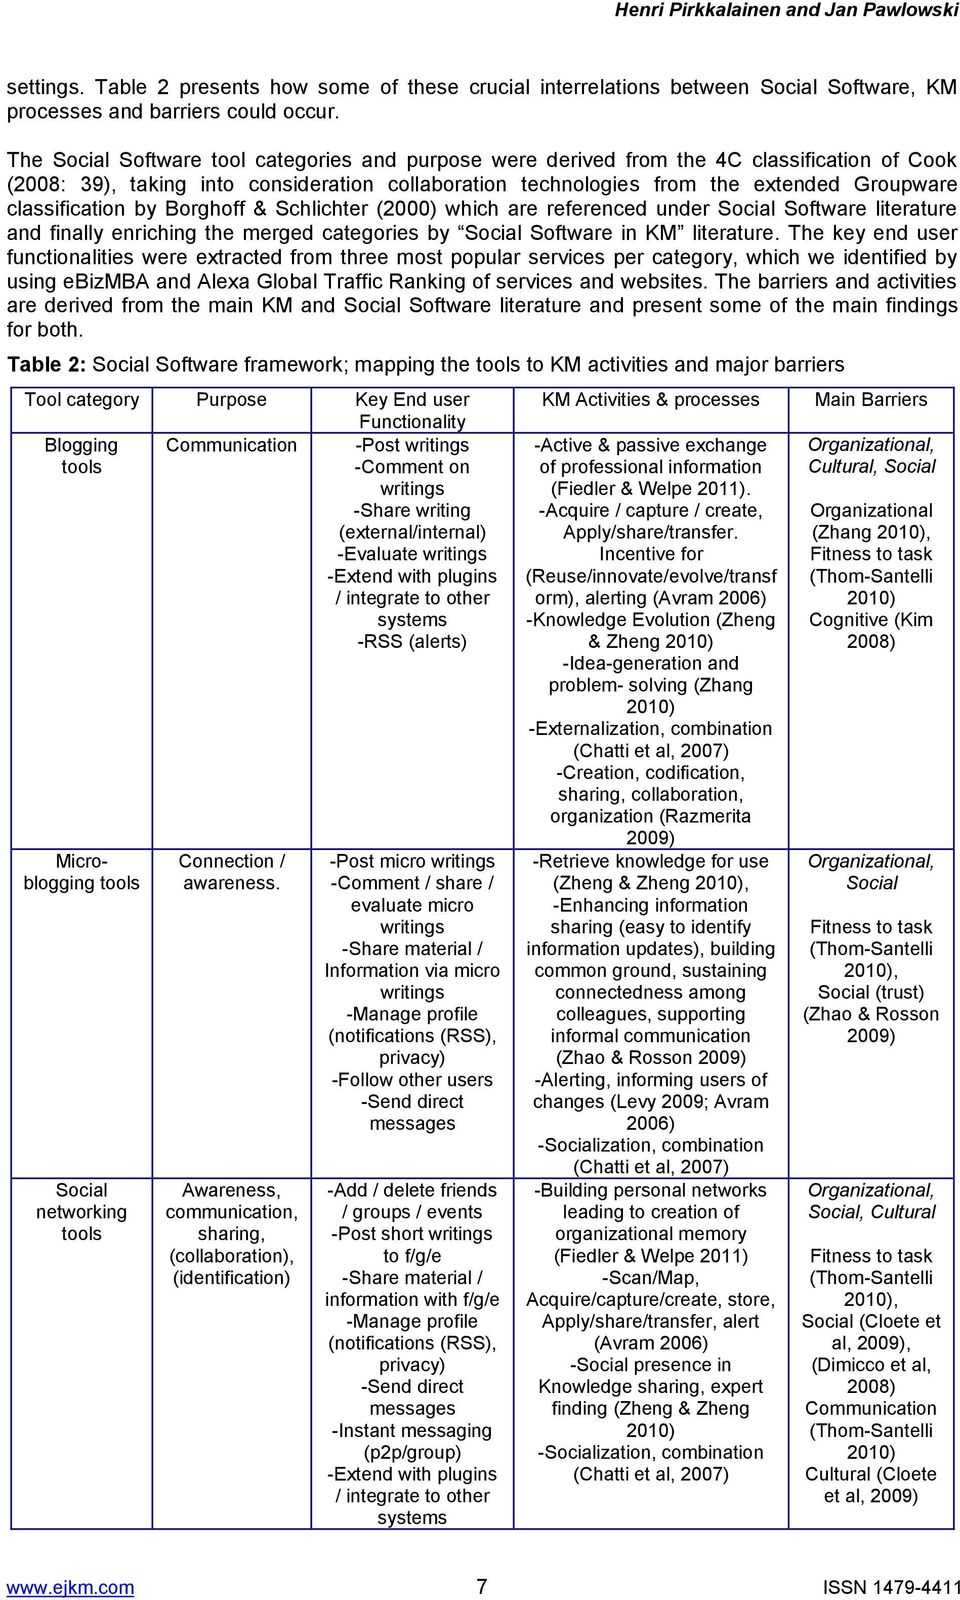 classification by Borghoff & Schlichter (2000) which are referenced under Social Software literature and finally enriching the merged categories by Social Software in KM literature.